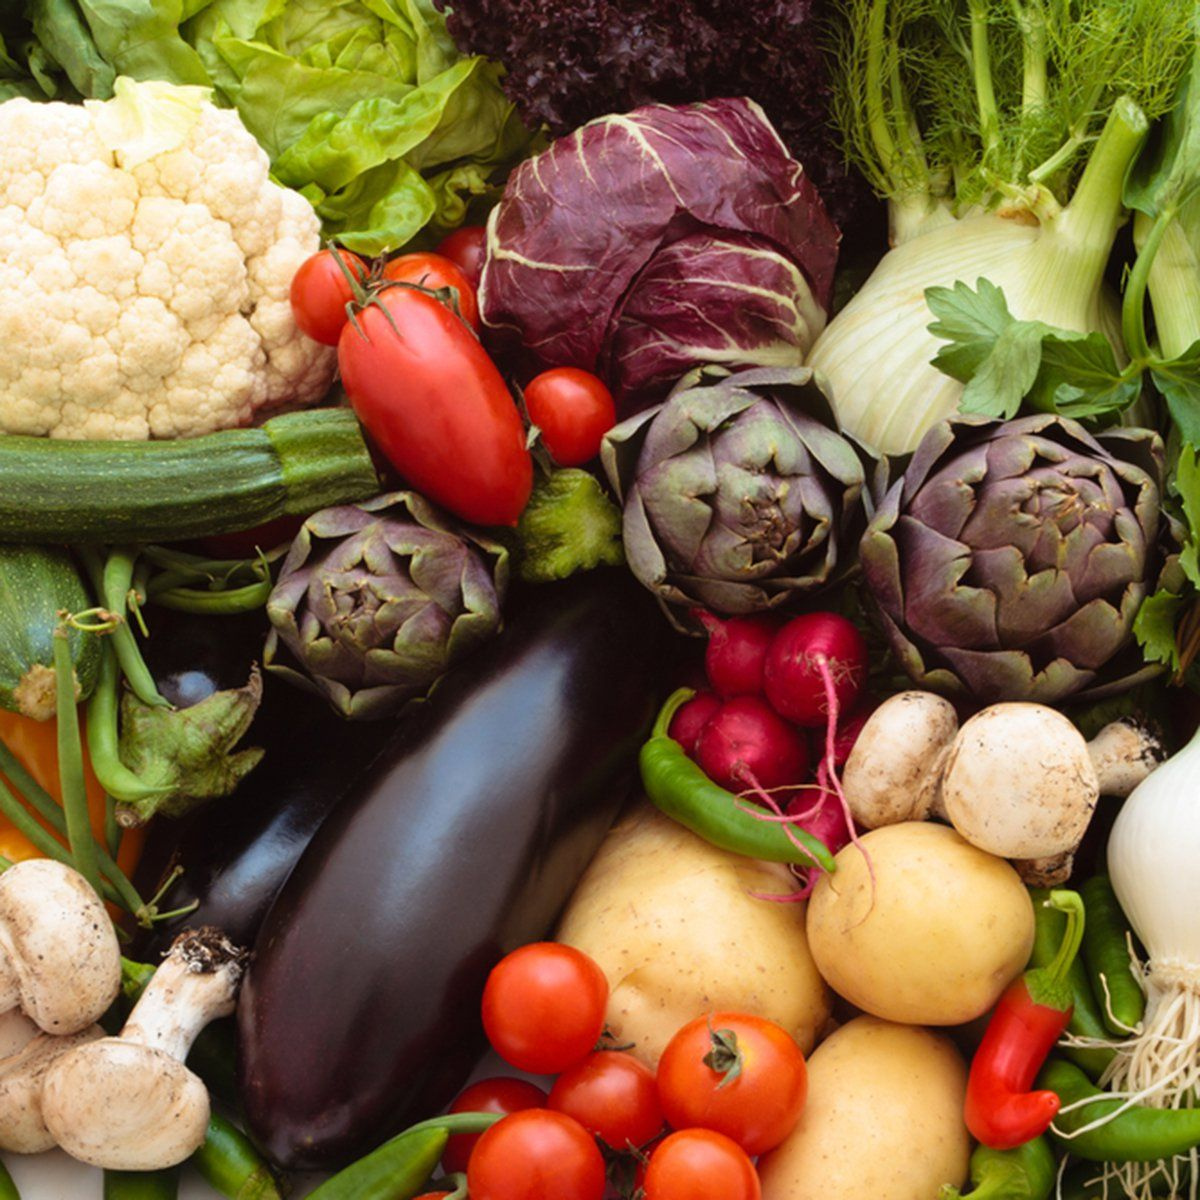 8 Things That Happen To Your Body When You Don T Eat Enough Fruits And Veggies Vegetables In Season Produce Seasonal Allergies